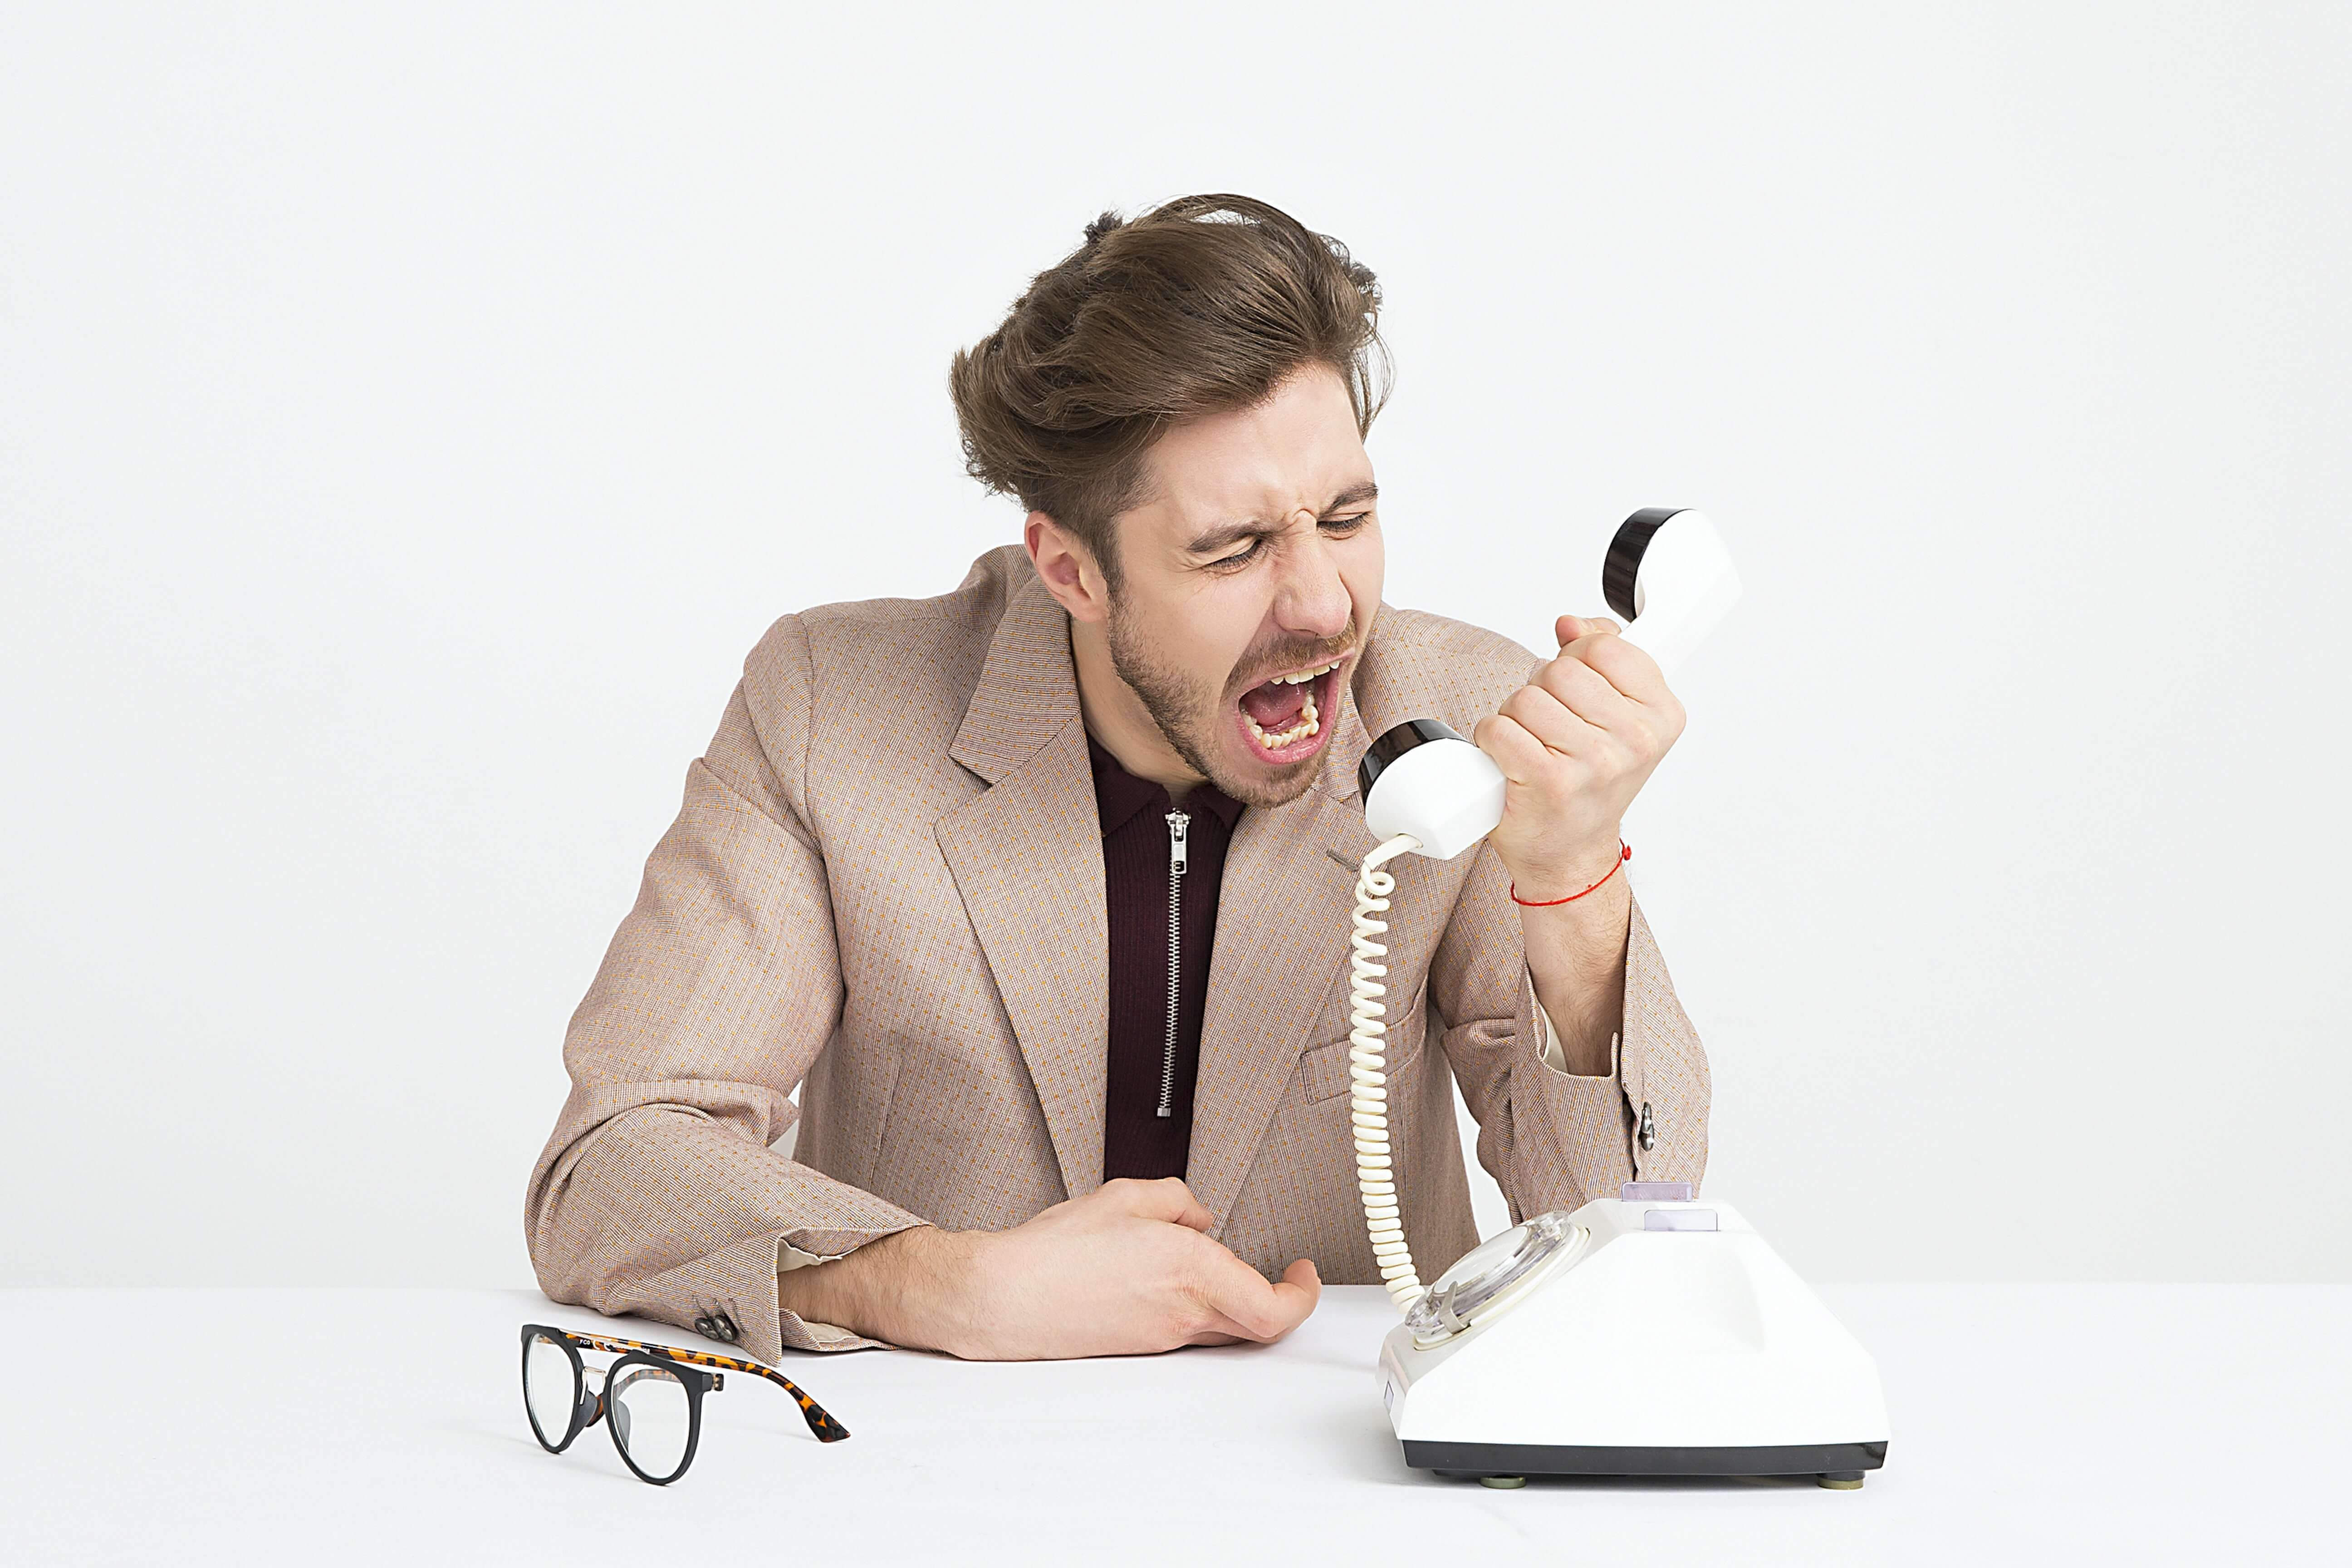 Image of a frustrated man on the phone.